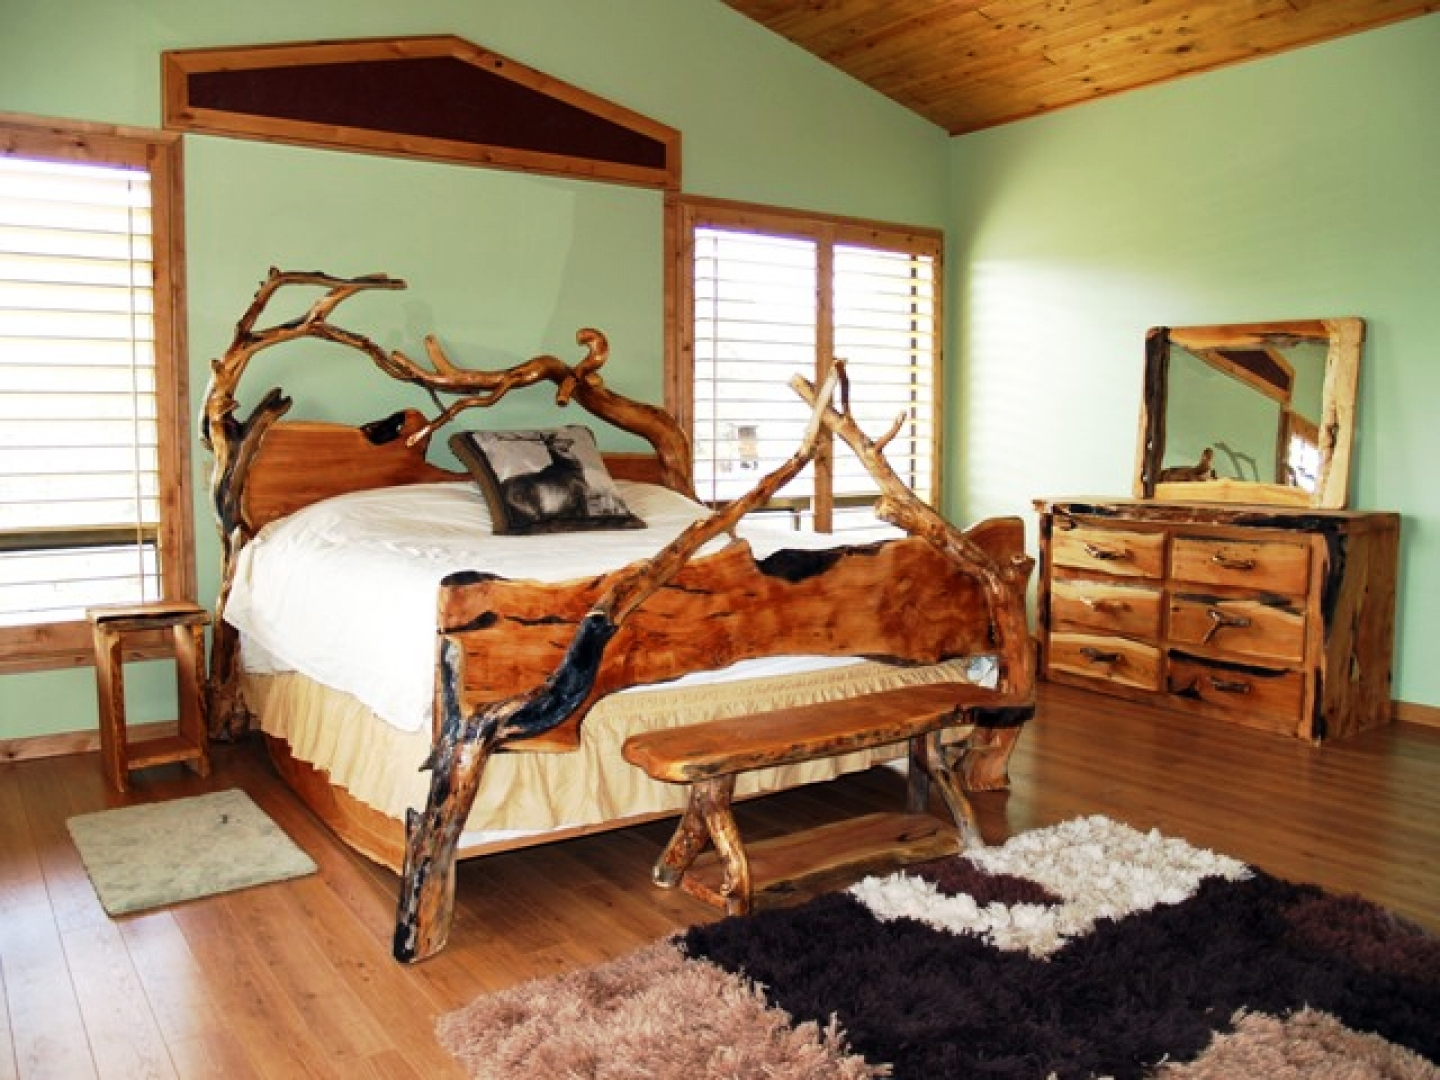 20-Rustic Bedroom Ideas